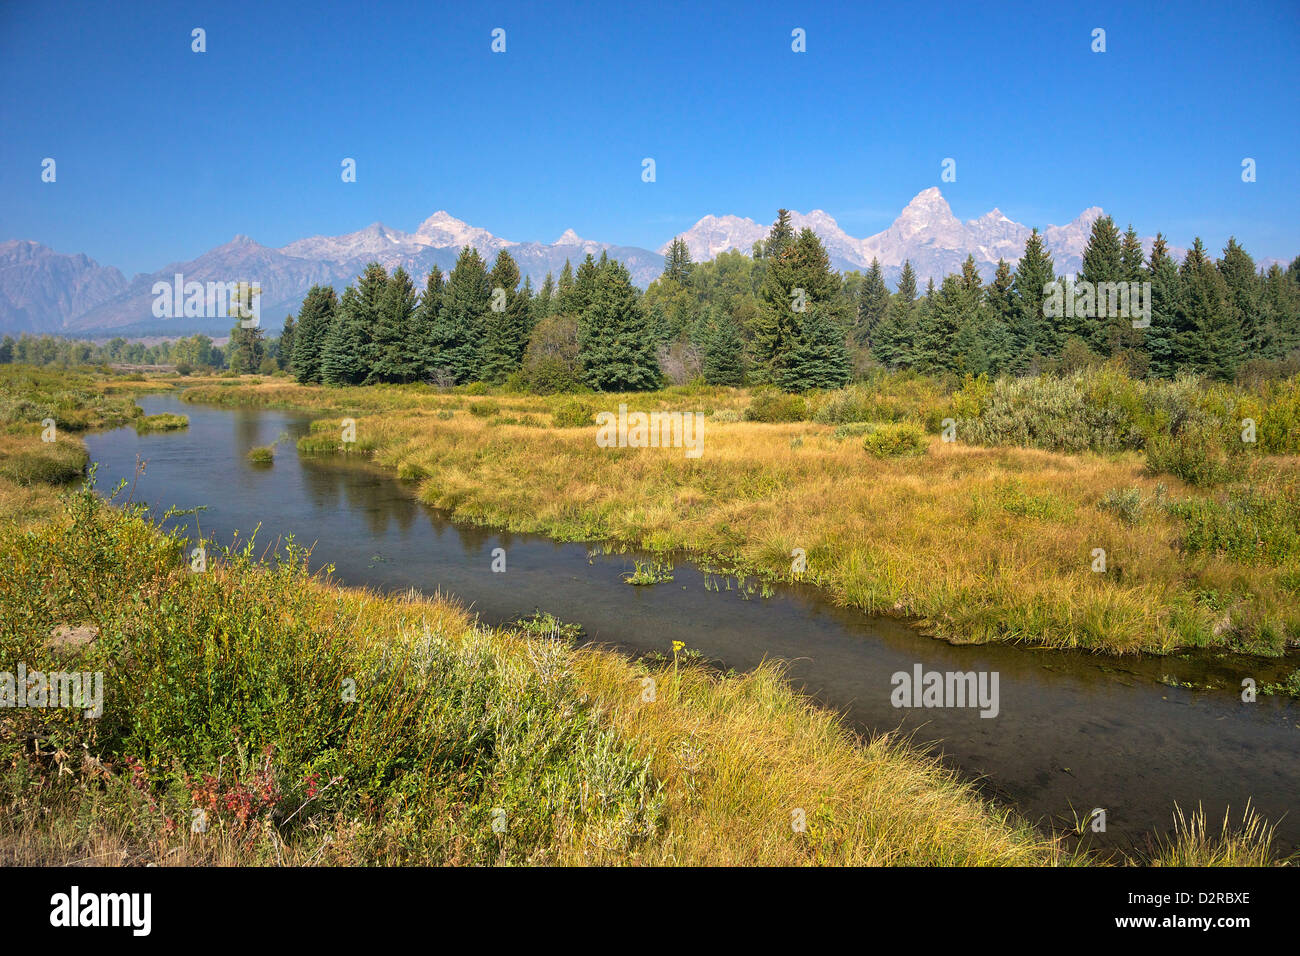 Snake River at the Schwabacher Landing, Grand Teton National Park, Wyoming, United States of America, North America - Stock Image